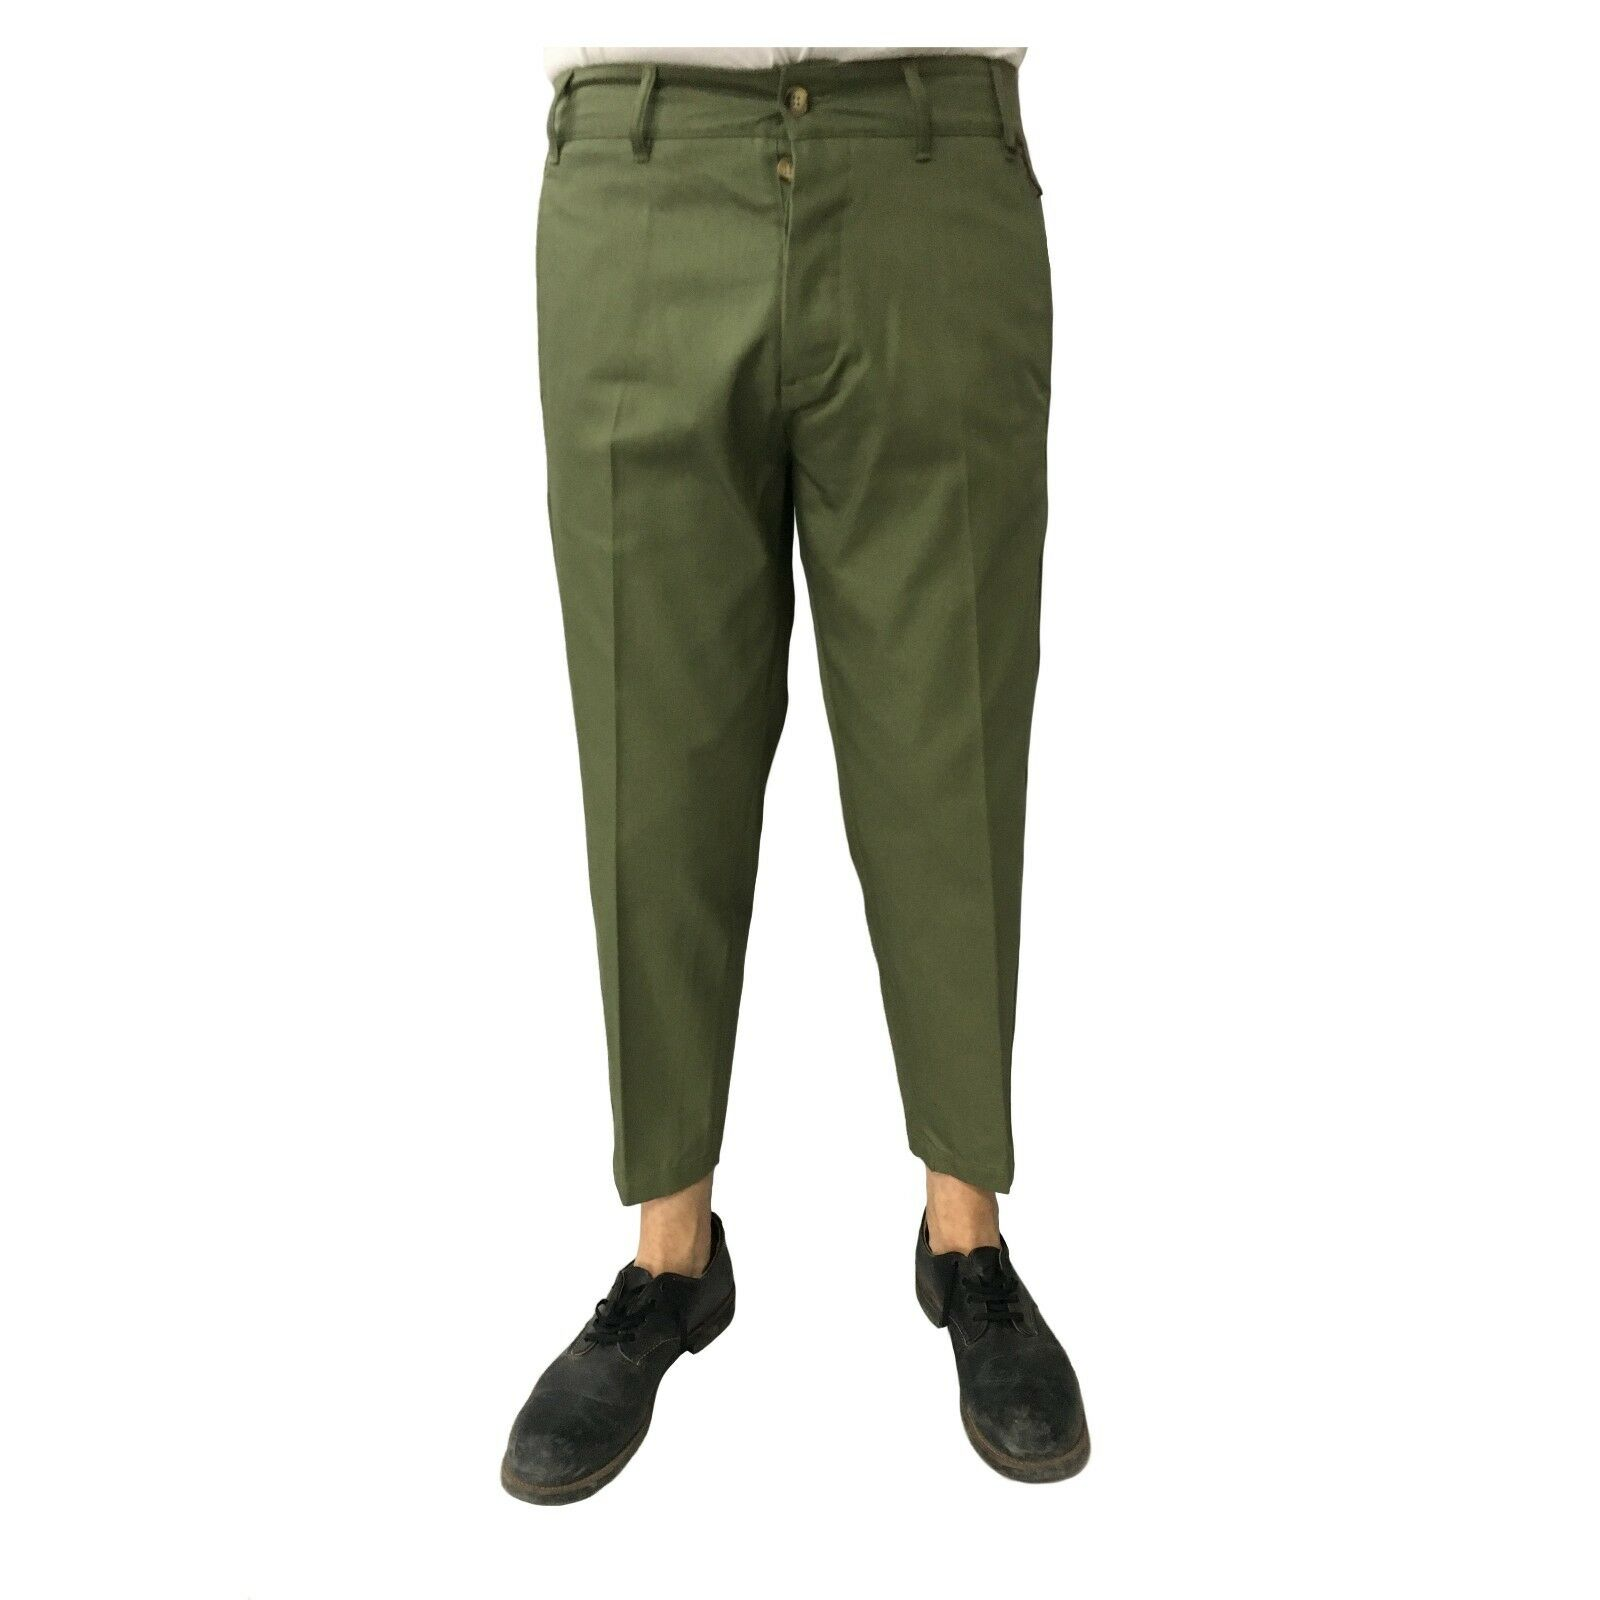 TISSUE' men's trousers green mod TPM00600 G001 100% cotton MADE IN ITALY